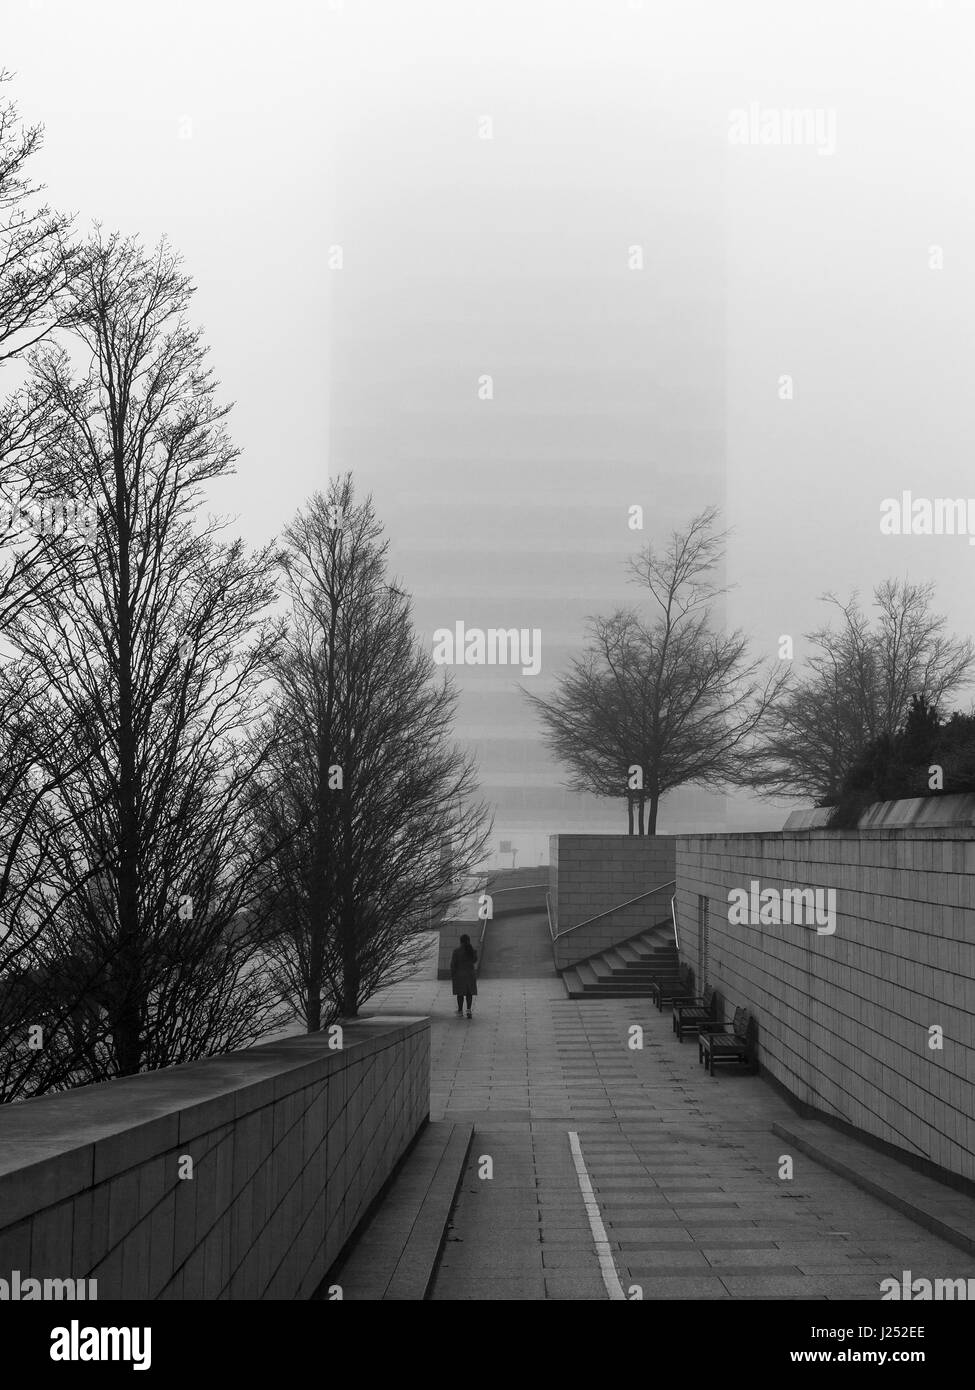 Docklands on a foggy winter day - Stock Image